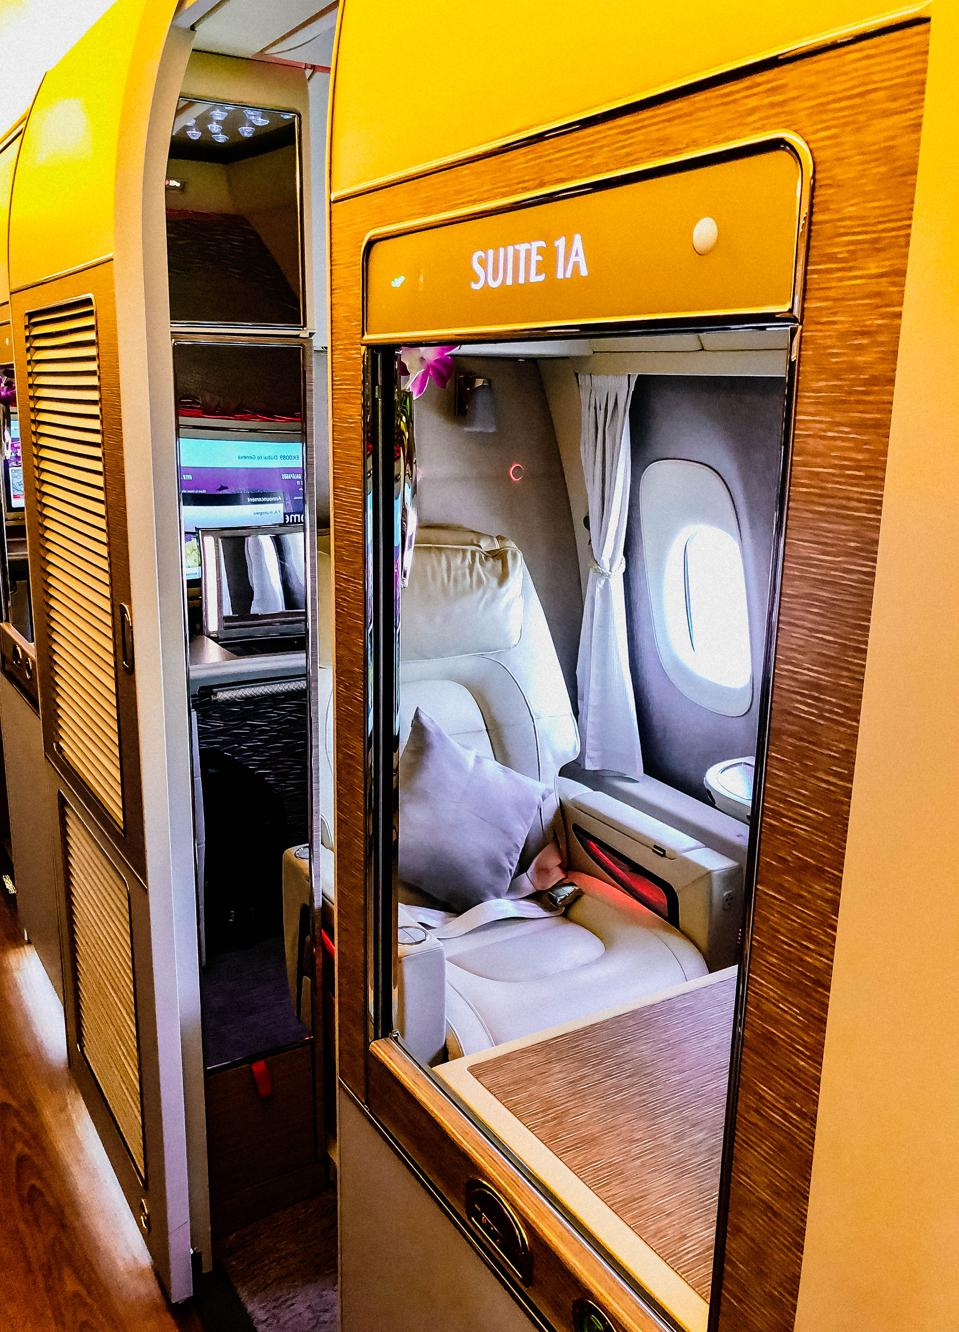 With groundbreaking technology, the suite is one of the best in the sky